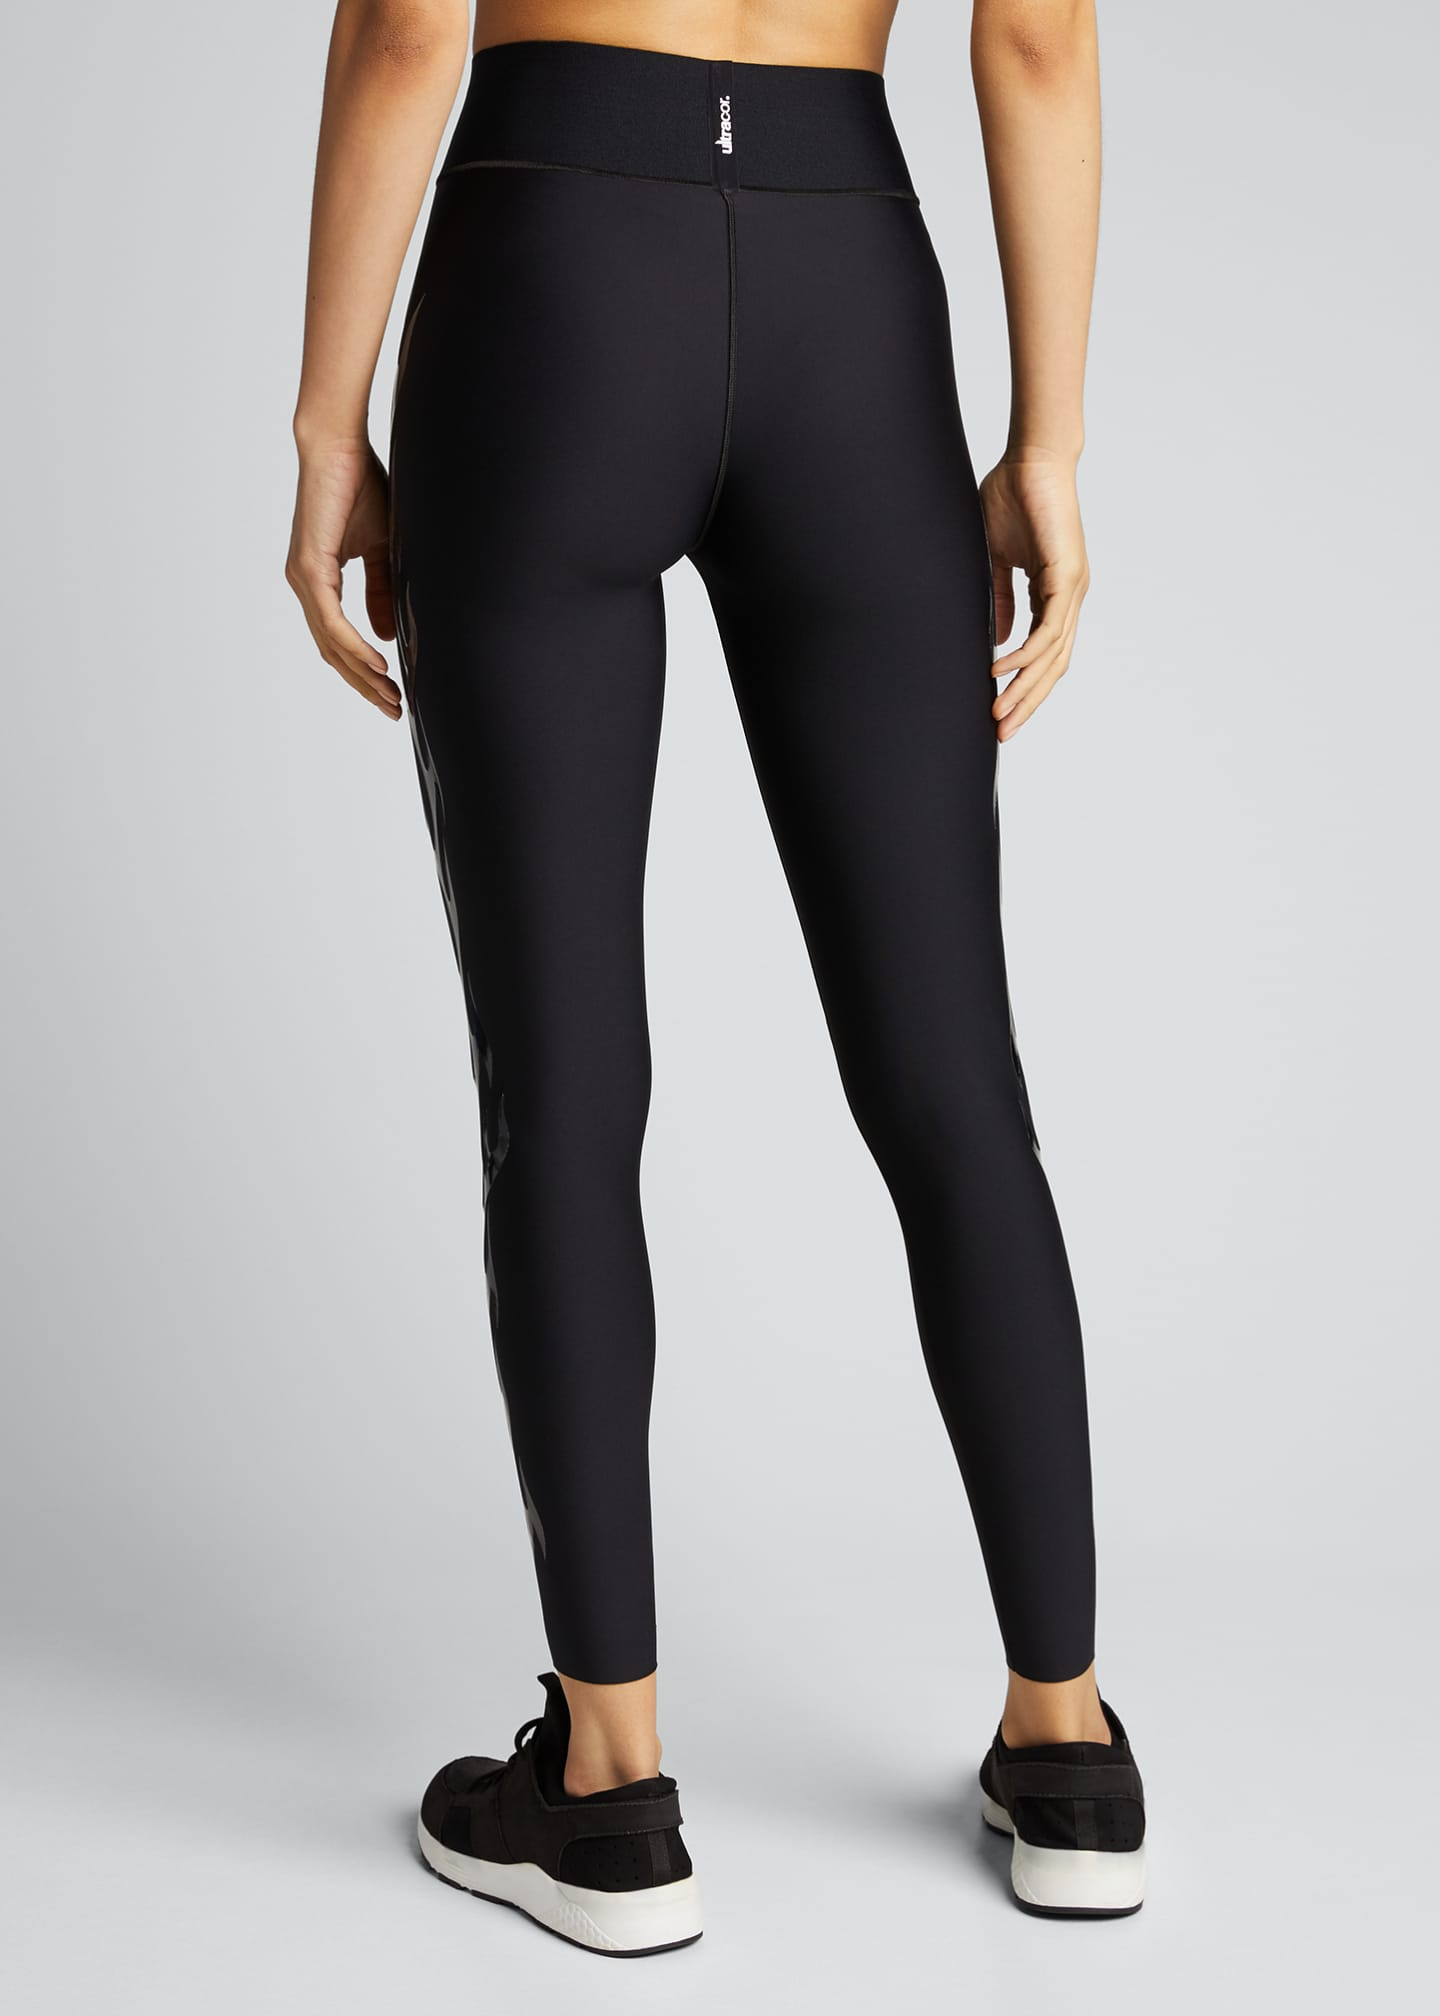 Image 2 of 5: Alight Ultra-High Performance Leggings